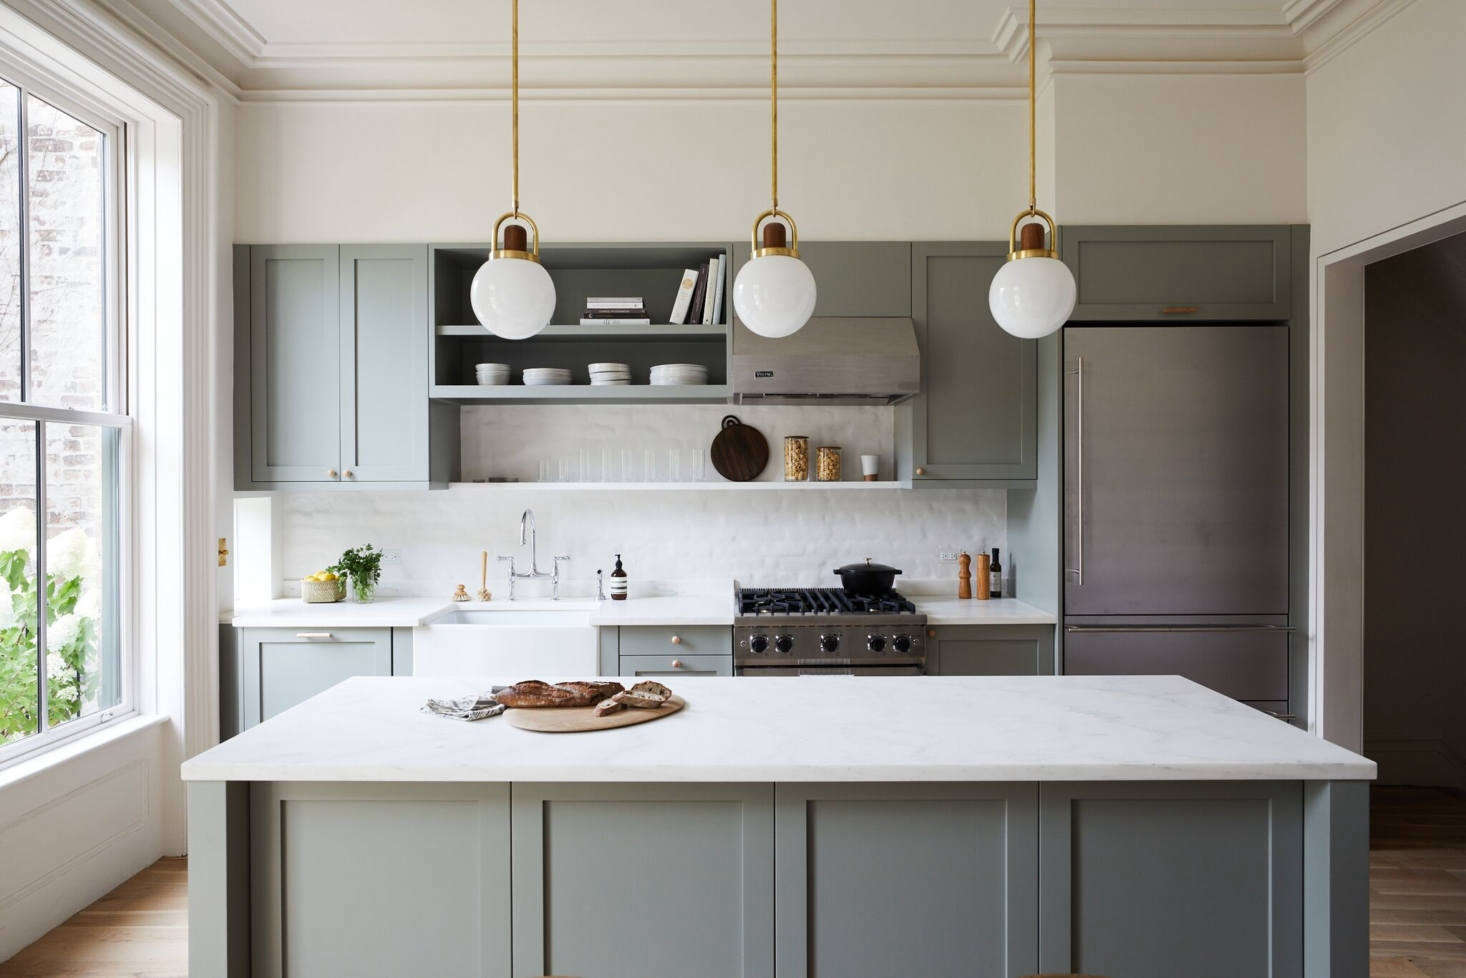 Steal This Look A Modern Brooklyn Kitchen Ikea Cabinets Included Remodelista